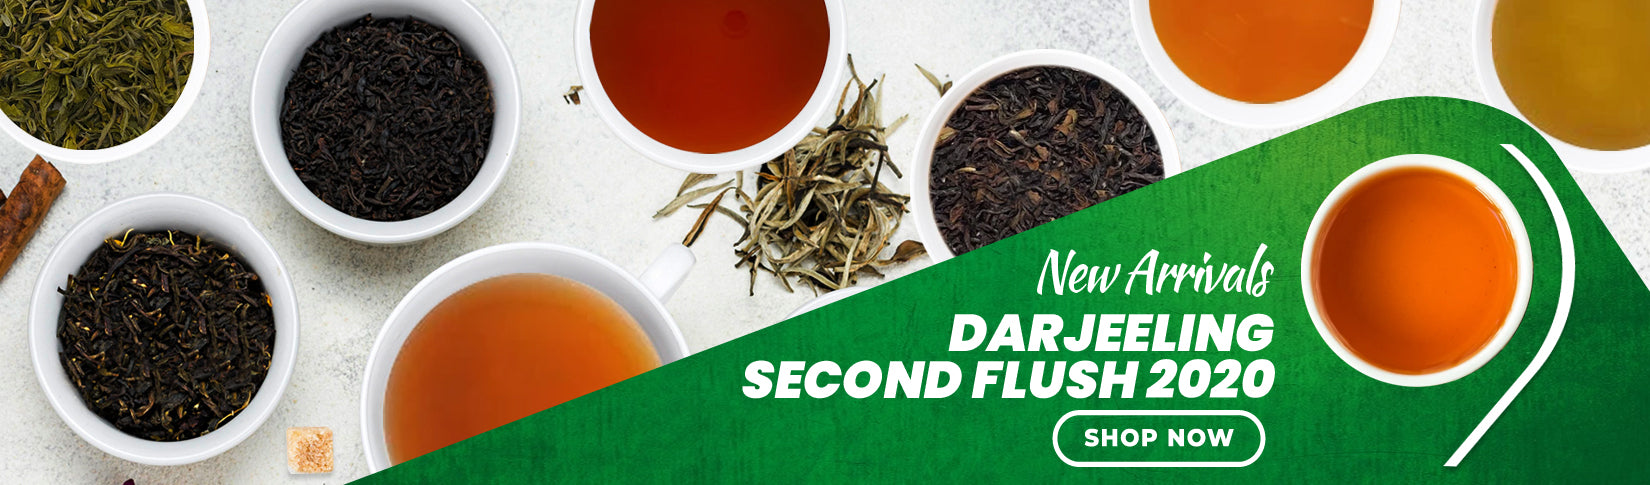 New arrivals darjeeling second flush from goldentipstea shop now